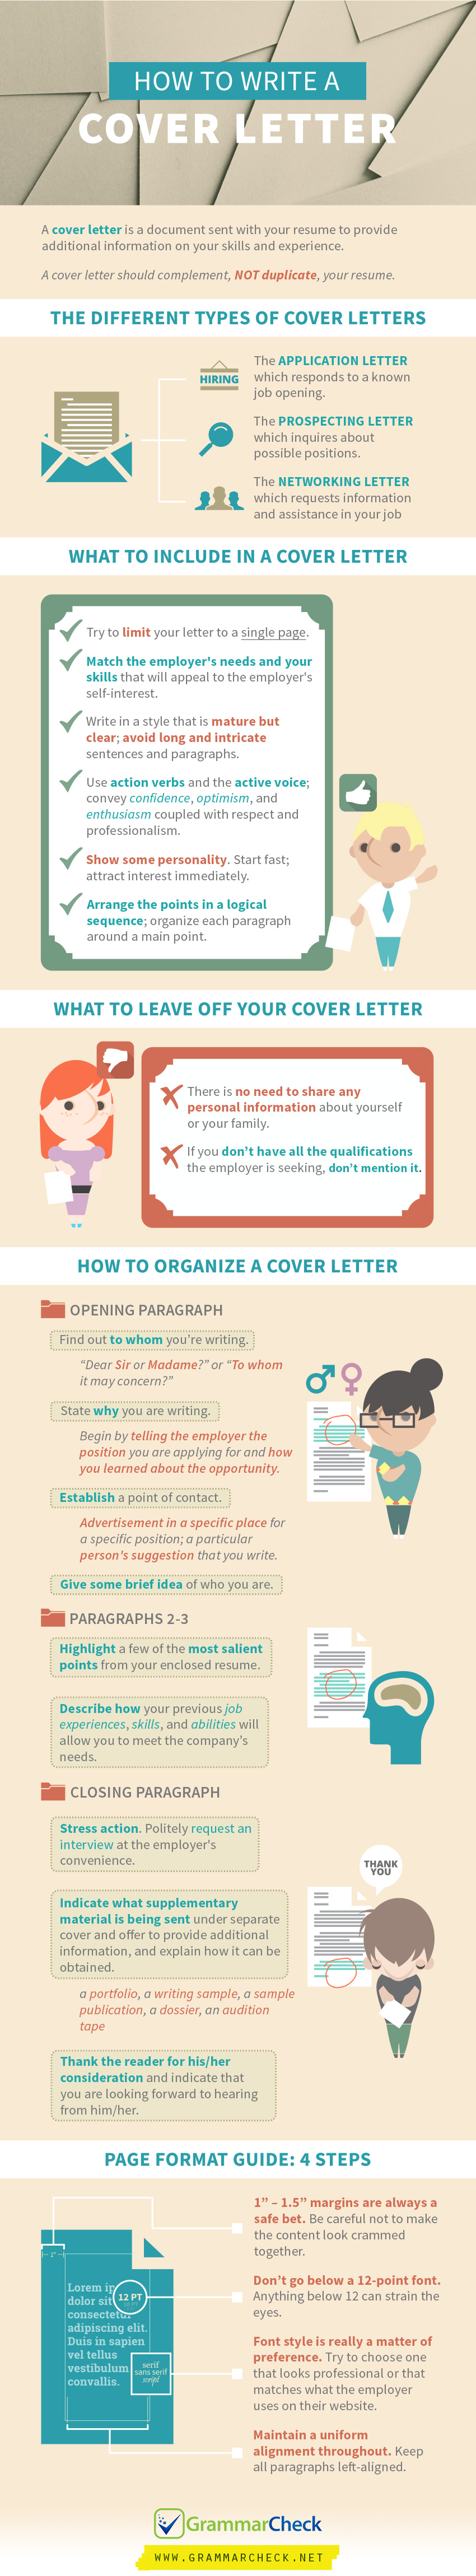 How to write a cover letter for your dream job